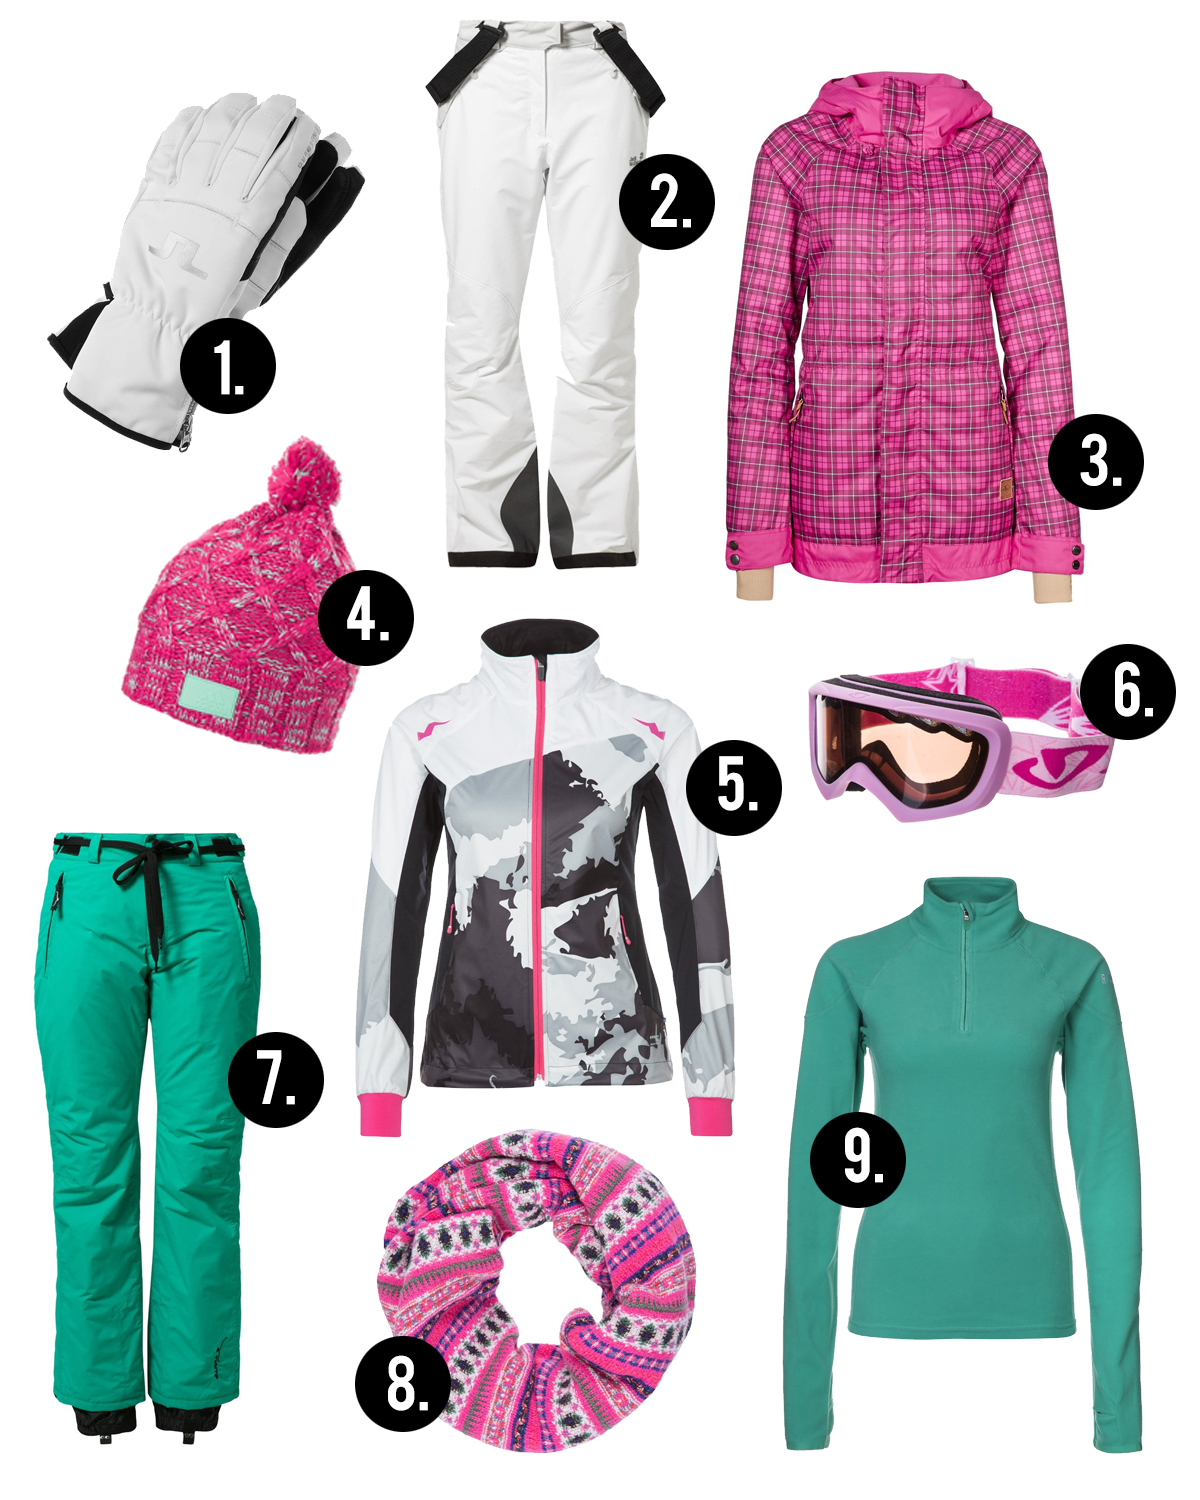 Wintersport-kleding-oneil-adidas-musthaves-roze Musthaves: Wintersport kleding